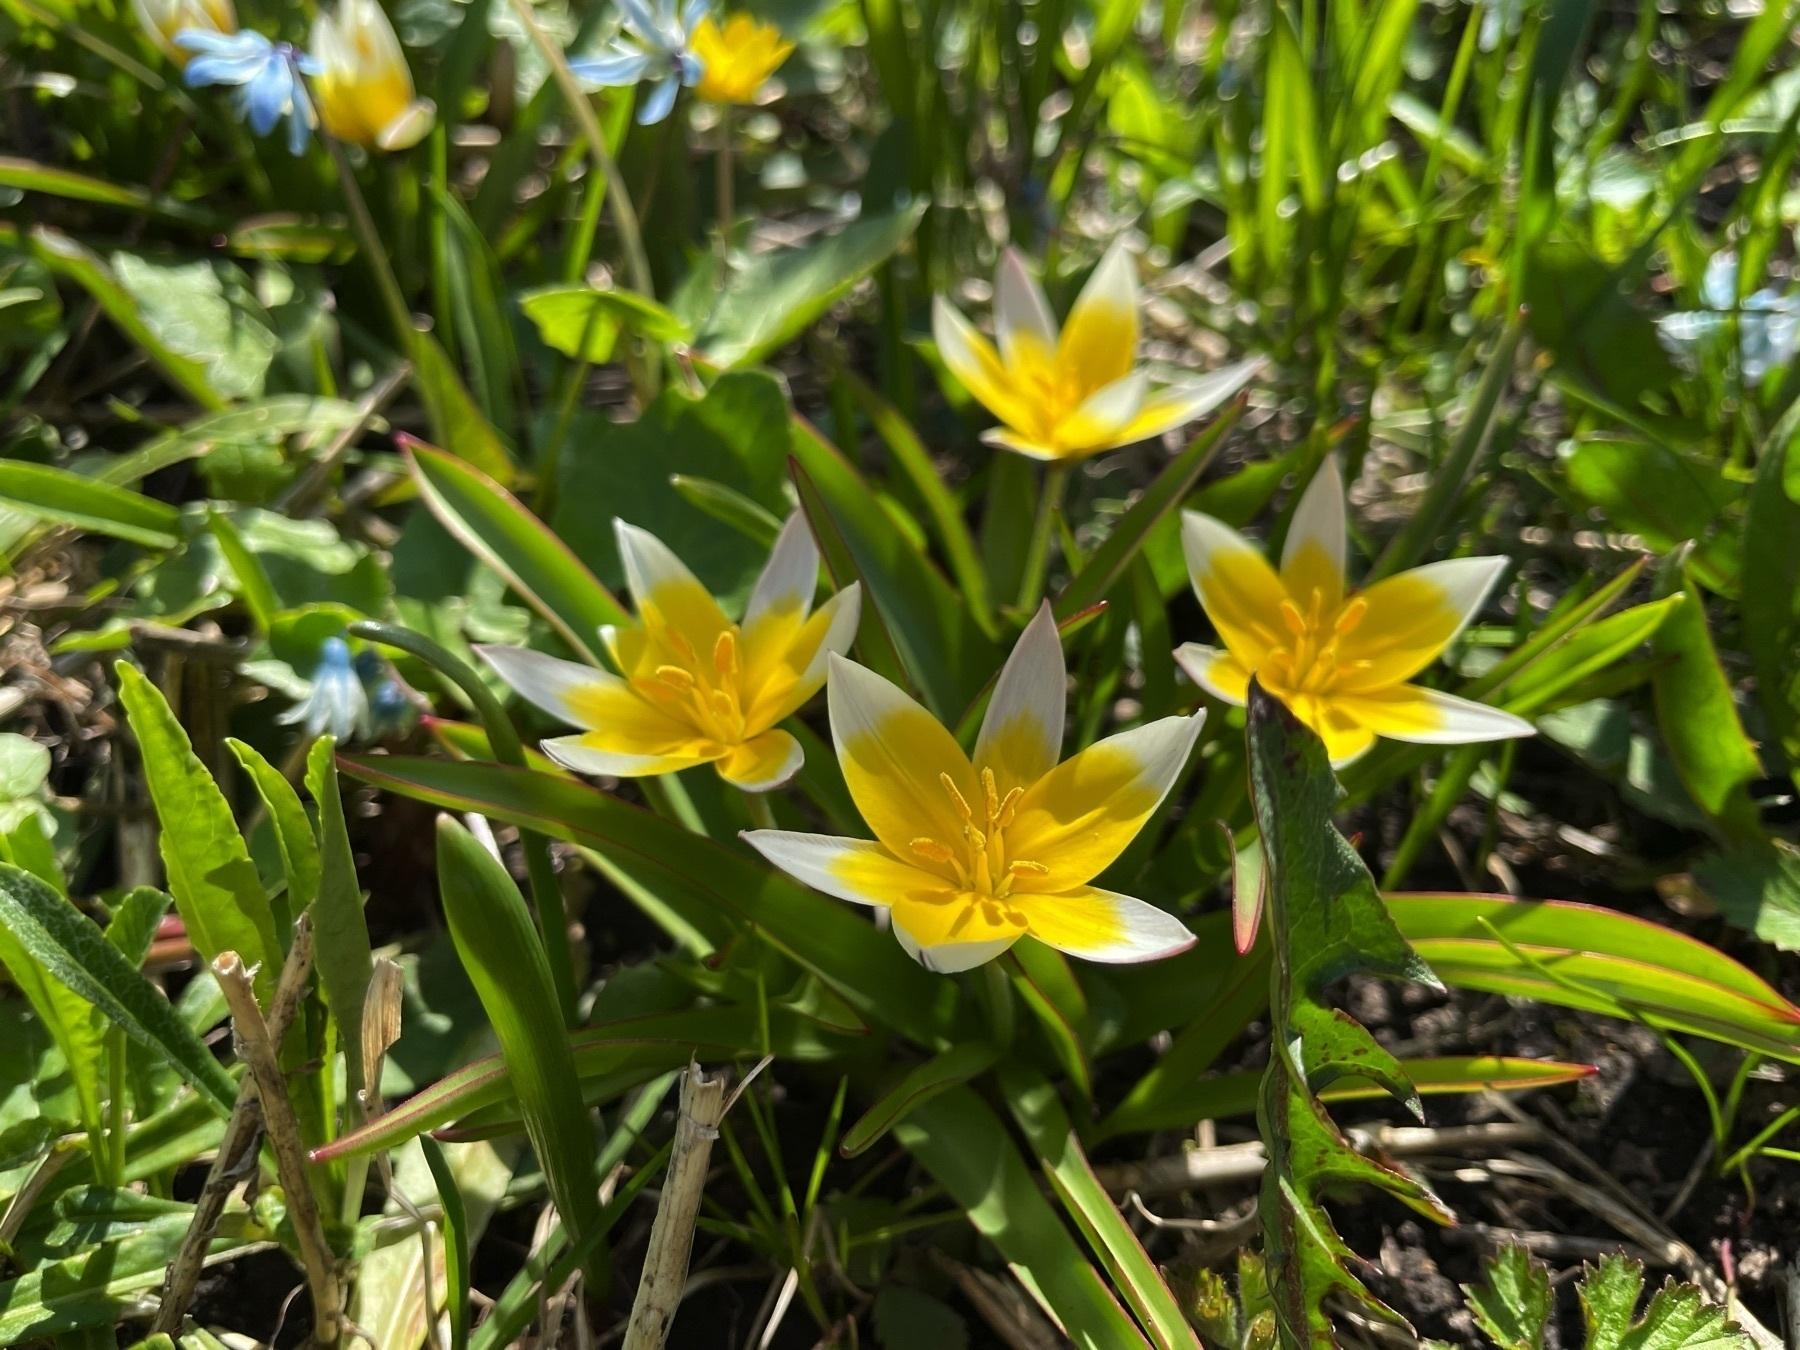 close up of flowers in a garden